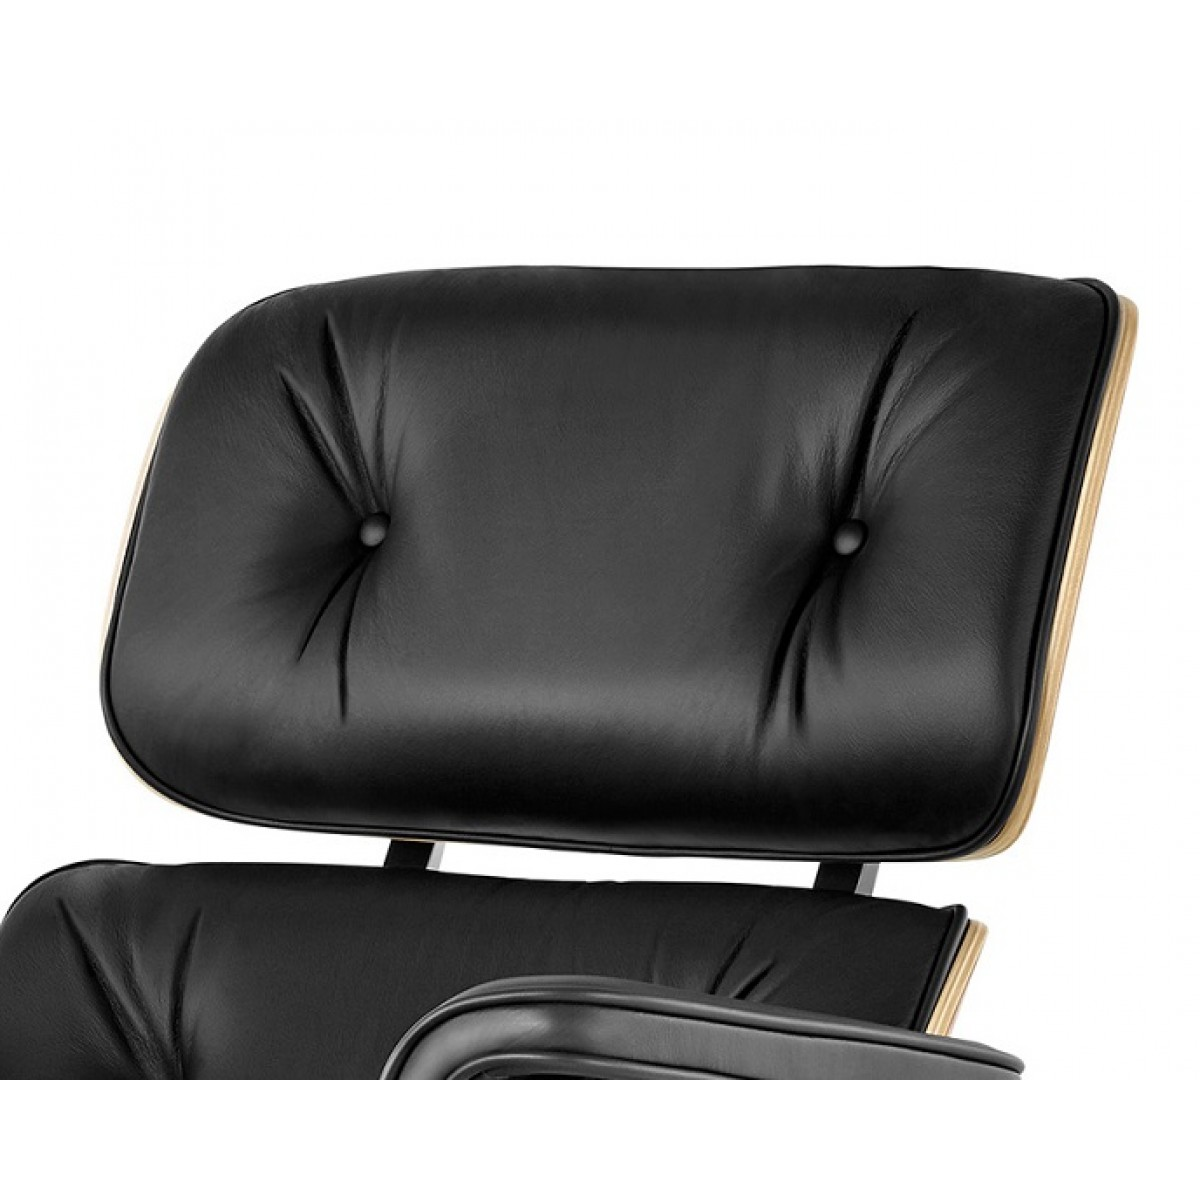 eames style lounge chair and ottoman black leather oak plywood replica. Black Bedroom Furniture Sets. Home Design Ideas